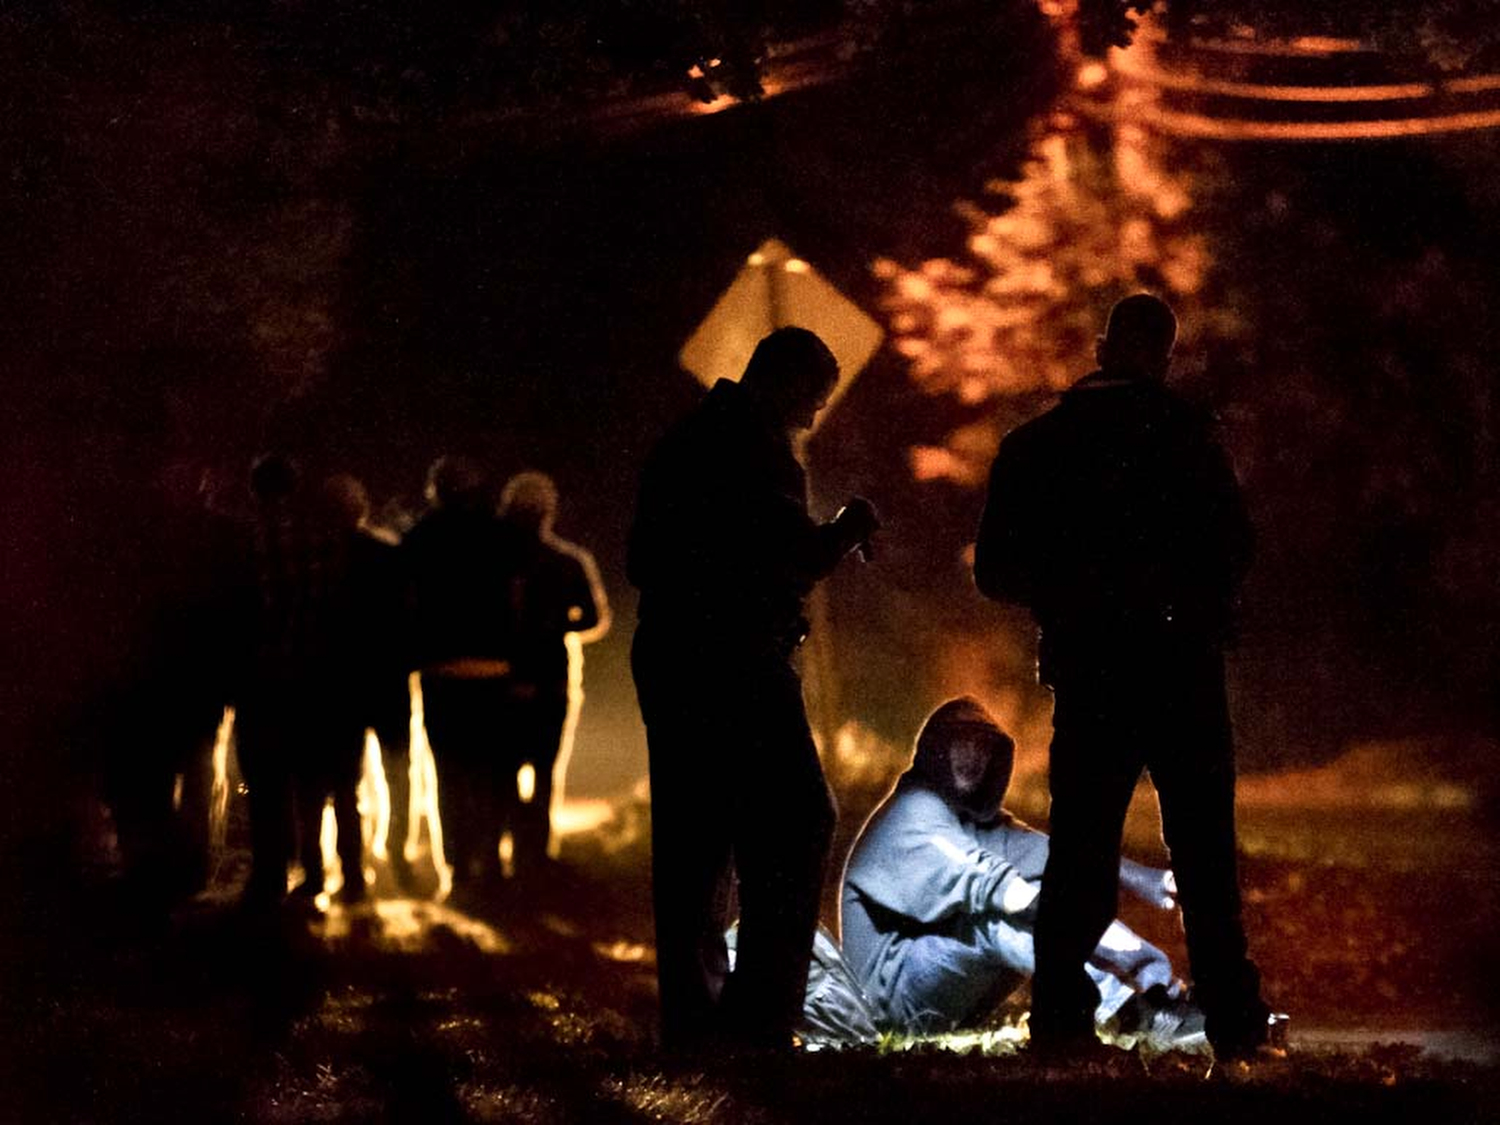 Police apprehend, search and question a UMASS Amherst student on his way to a party on Fearing Street in Amherst, Massachusetts. 2012